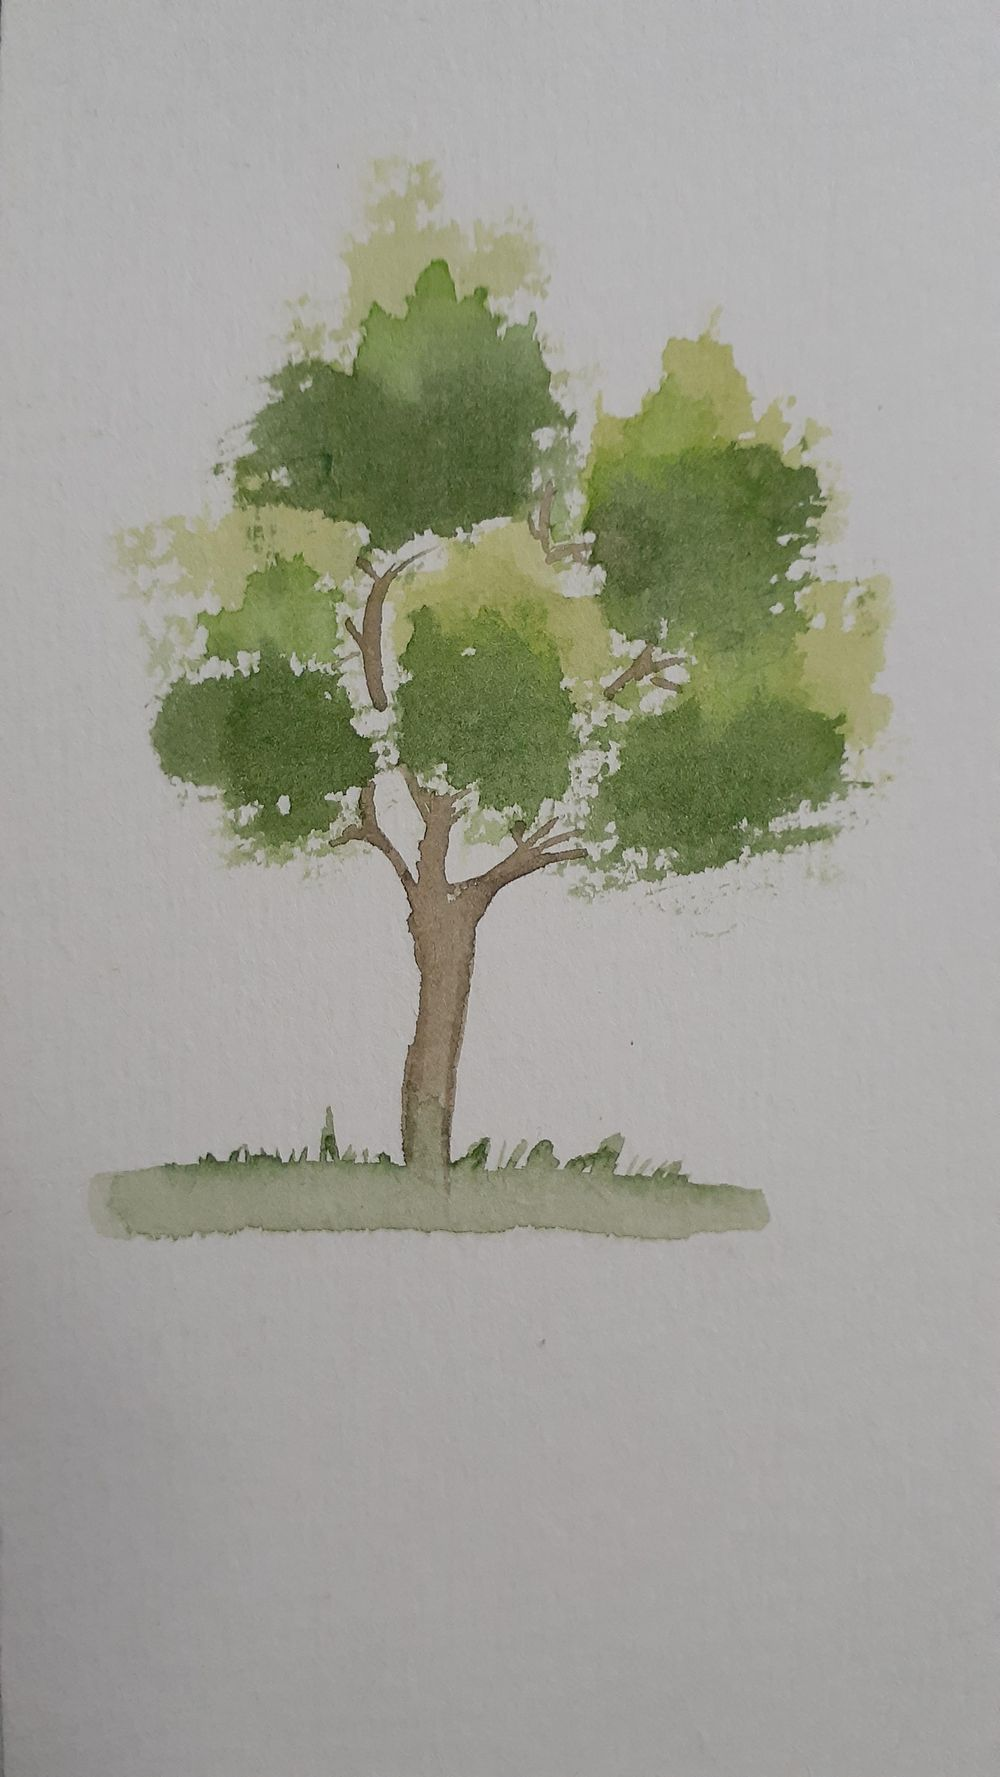 Watercolor Trees by Michelle - image 1 - student project